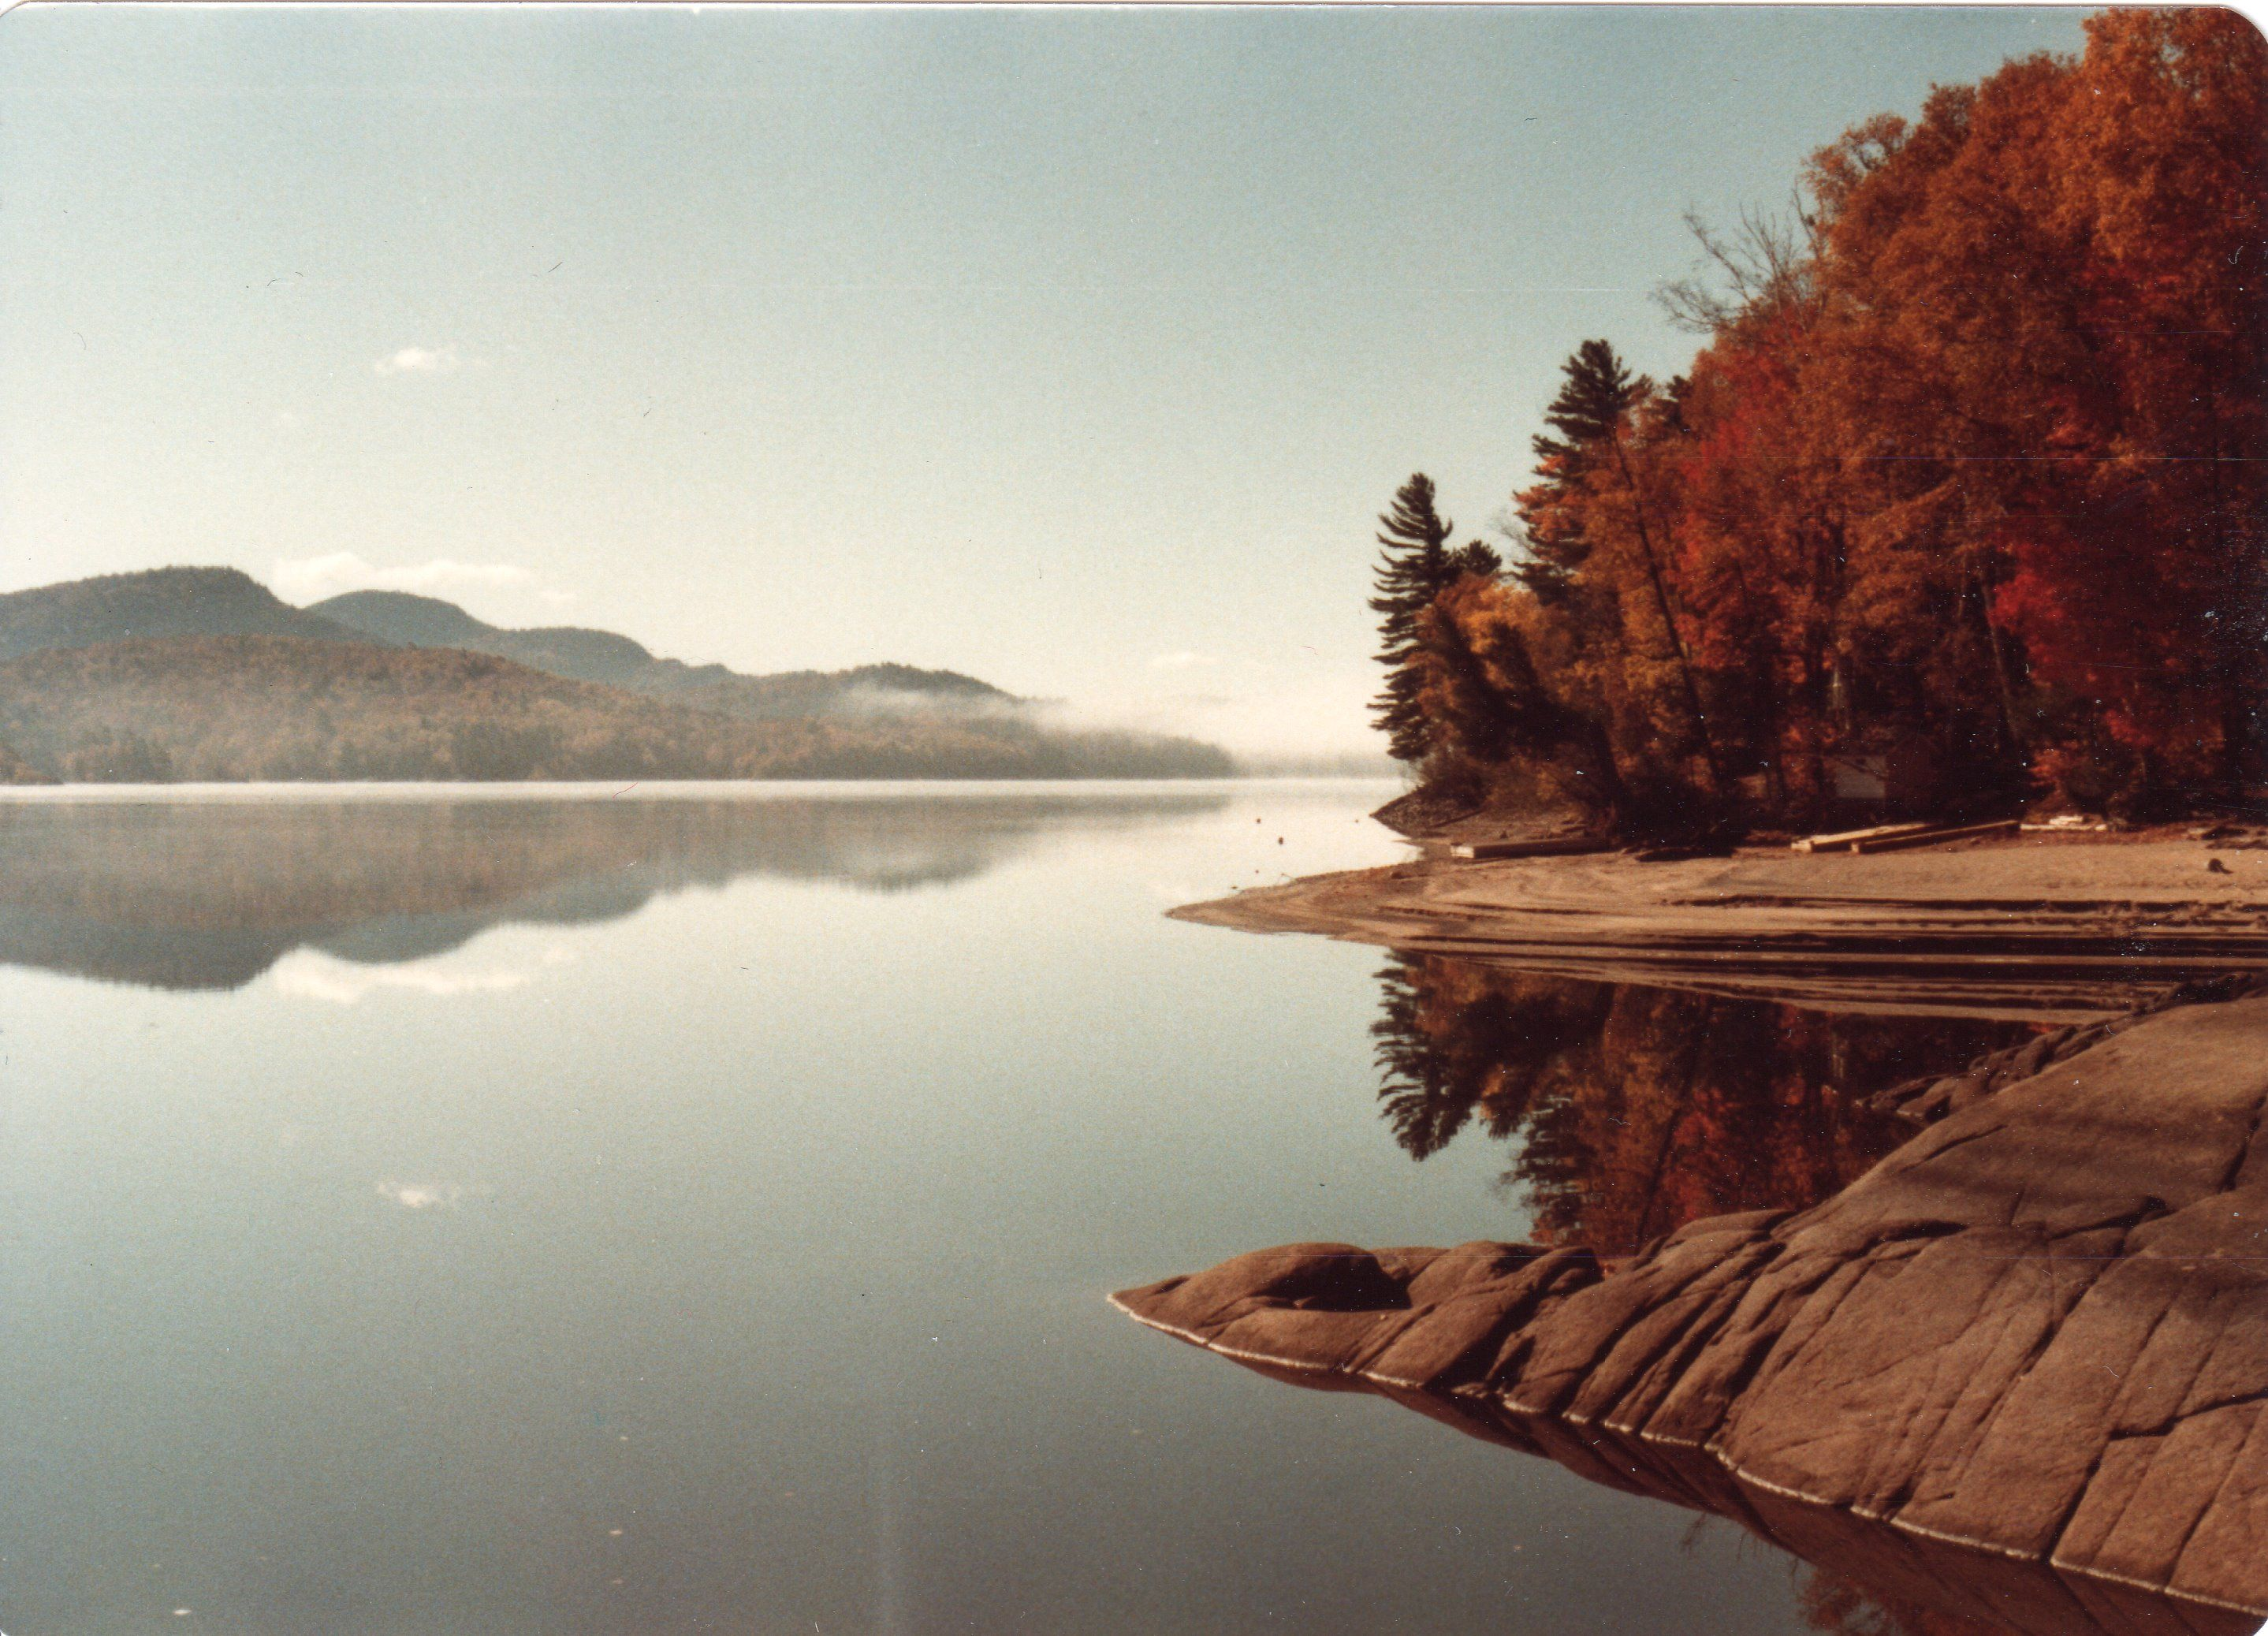 Chimney Mountain, Indian Lake NY | Day trips, Places to